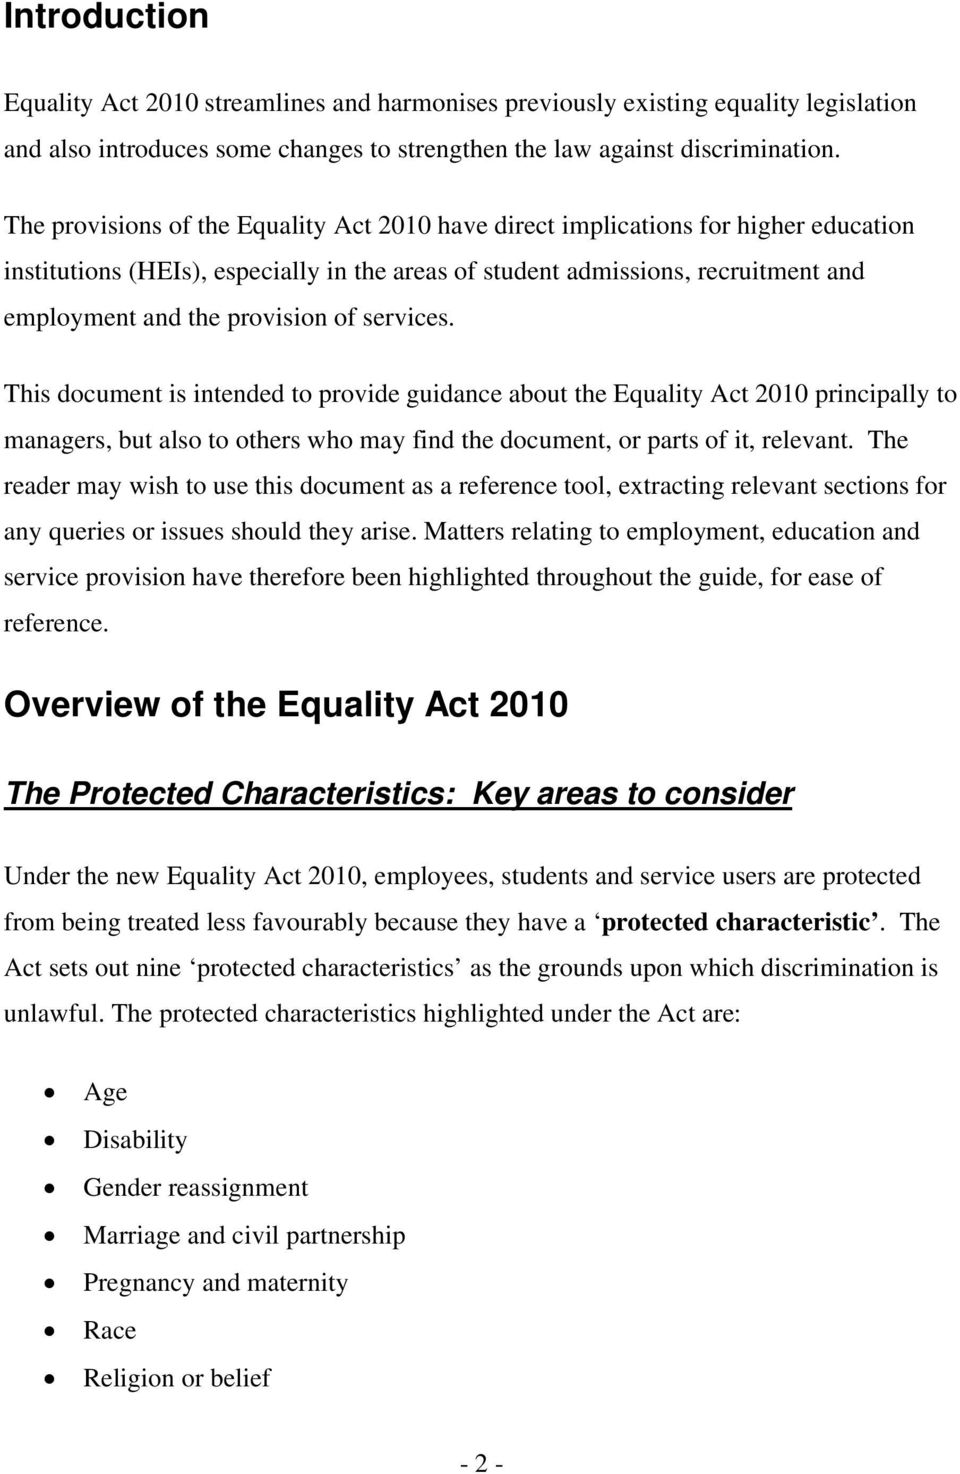 of services. This document is intended to provide guidance about the Equality Act 2010 principally to managers, but also to others who may find the document, or parts of it, relevant.